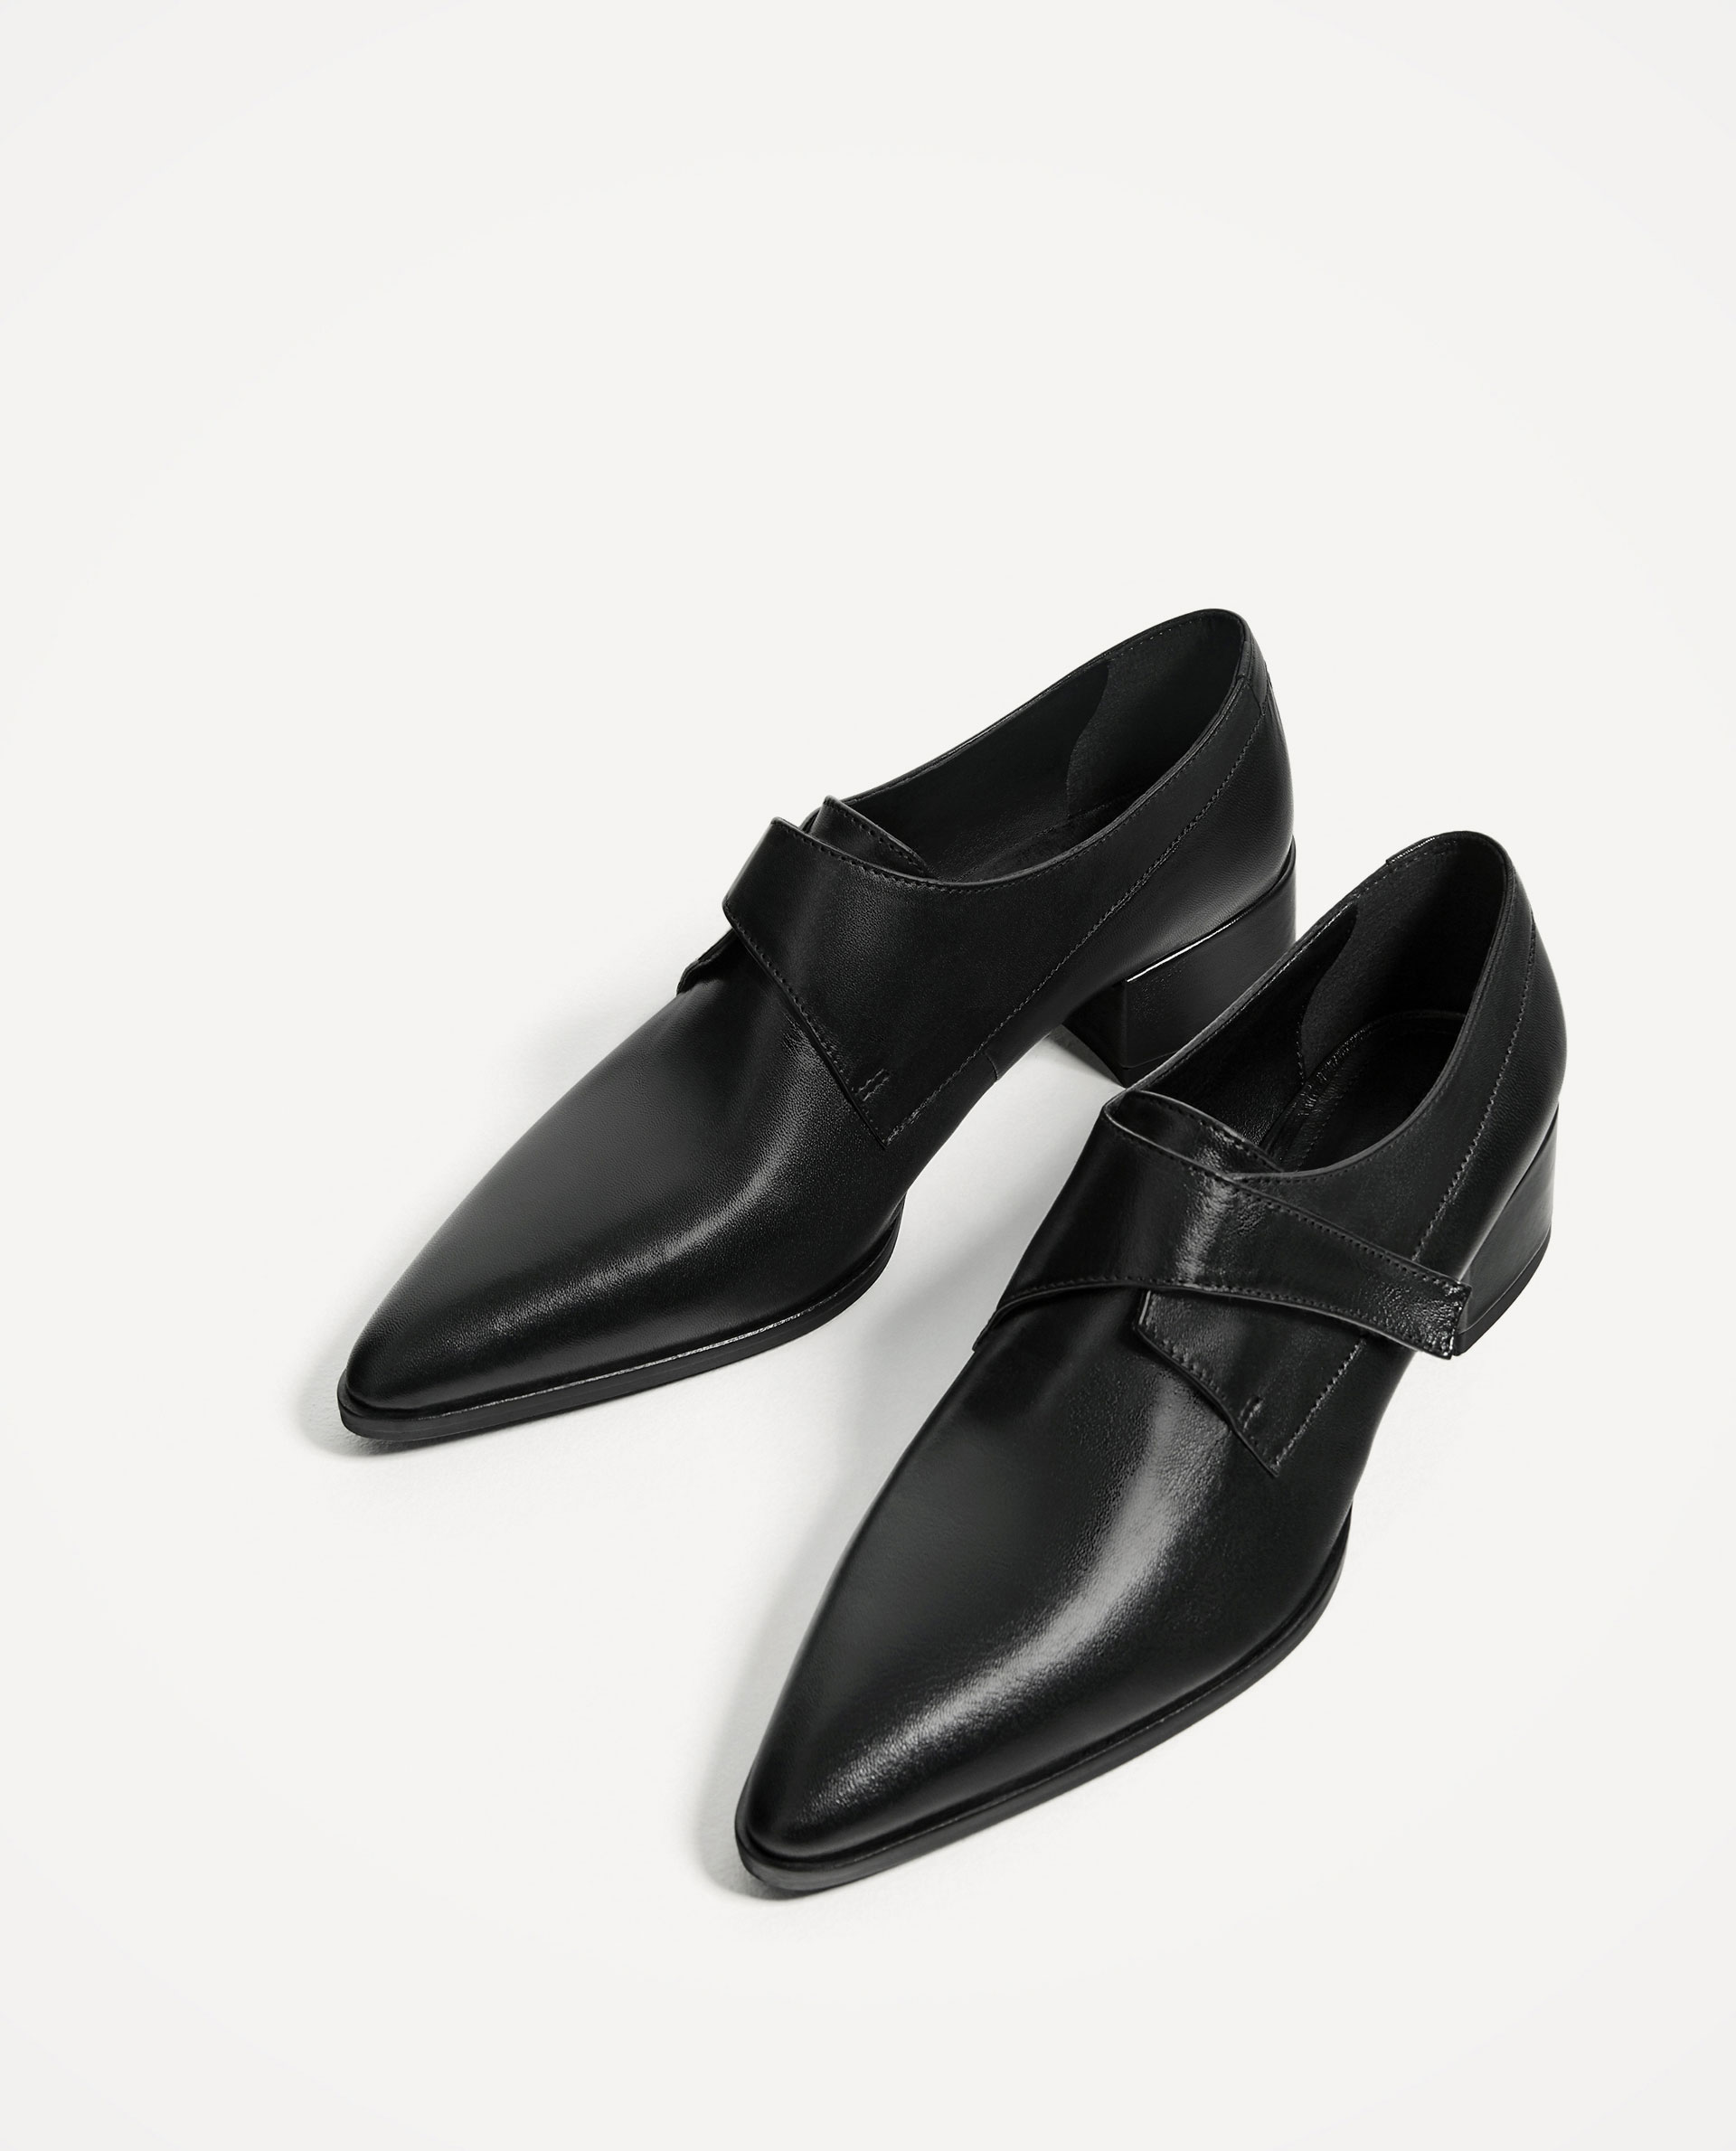 BLACK FLAT LEATHER SHOES